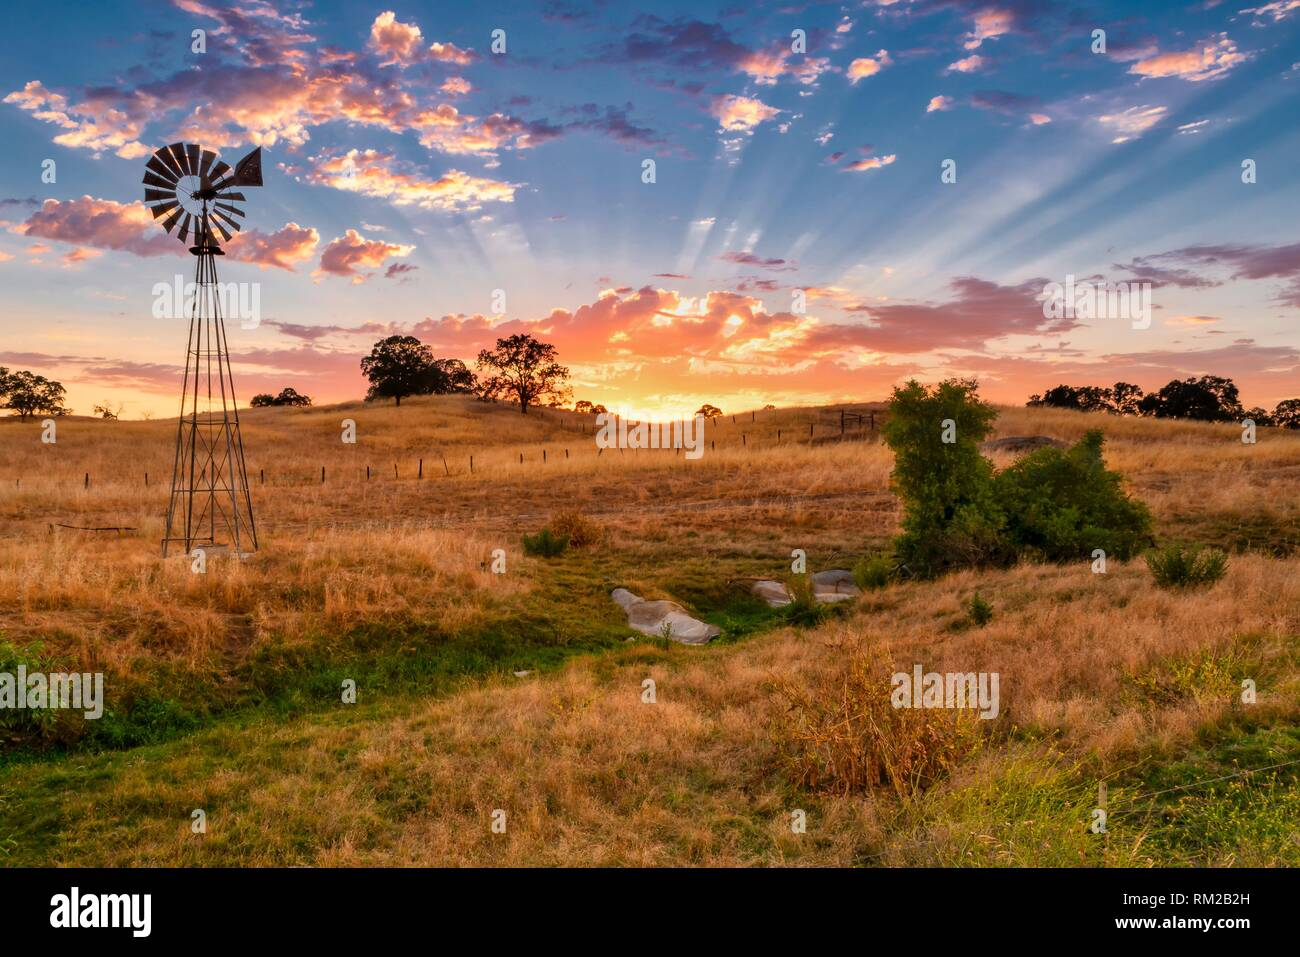 Windmill at Sunset in foothills of Central California. - Stock Image